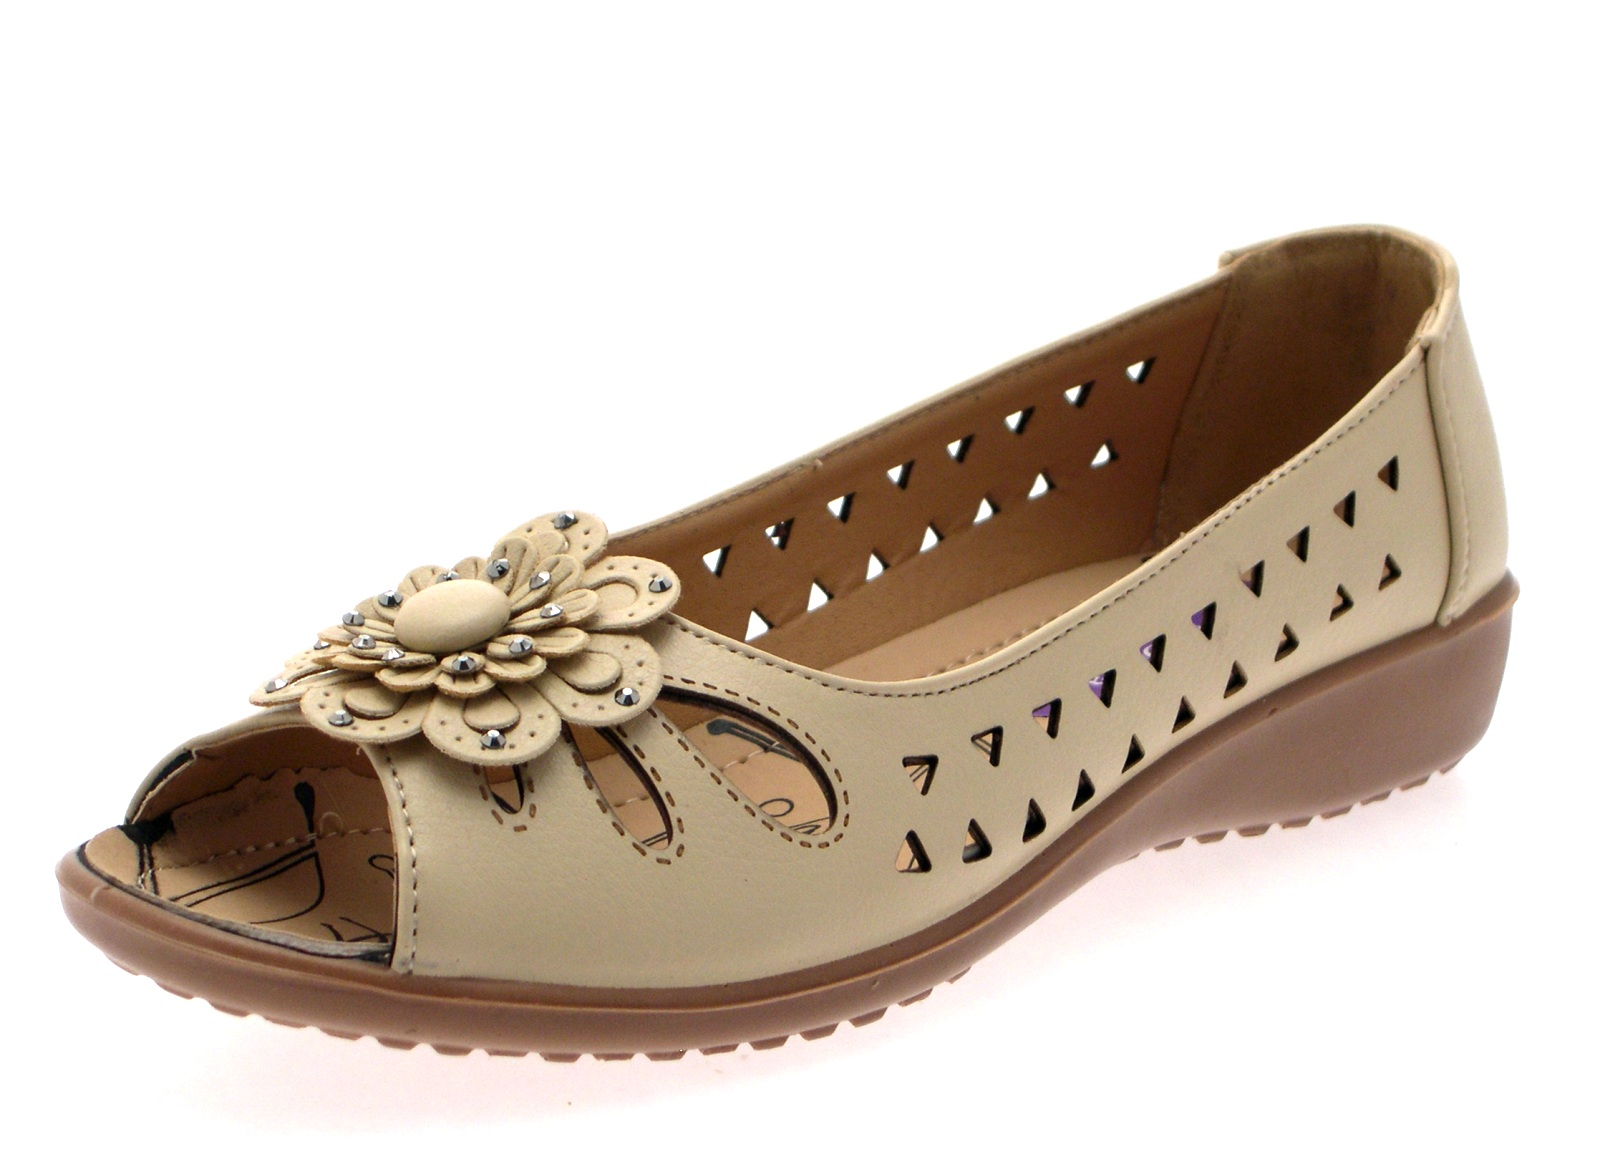 3abe1e13831 Womens Faux Leather Comfort Cut Out Flat Shoes Flower Sandals Ladies ...